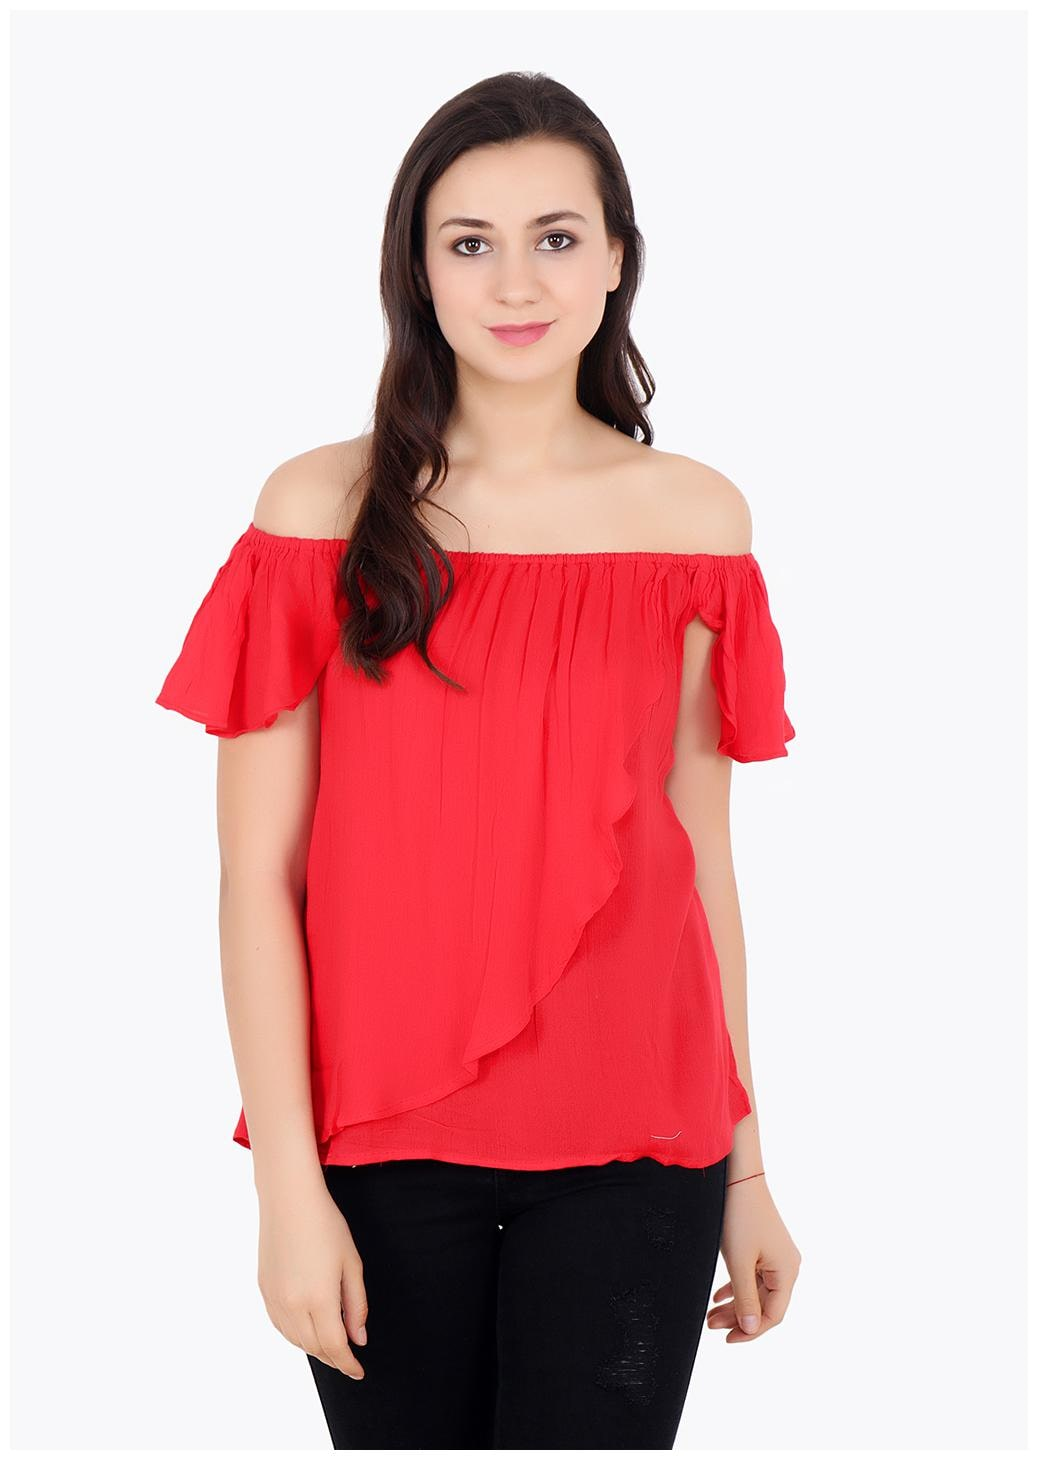 https://assetscdn1.paytm.com/images/catalog/product/A/AP/APPCATION-RED-SKANC313044BB5195/a_0..jpg